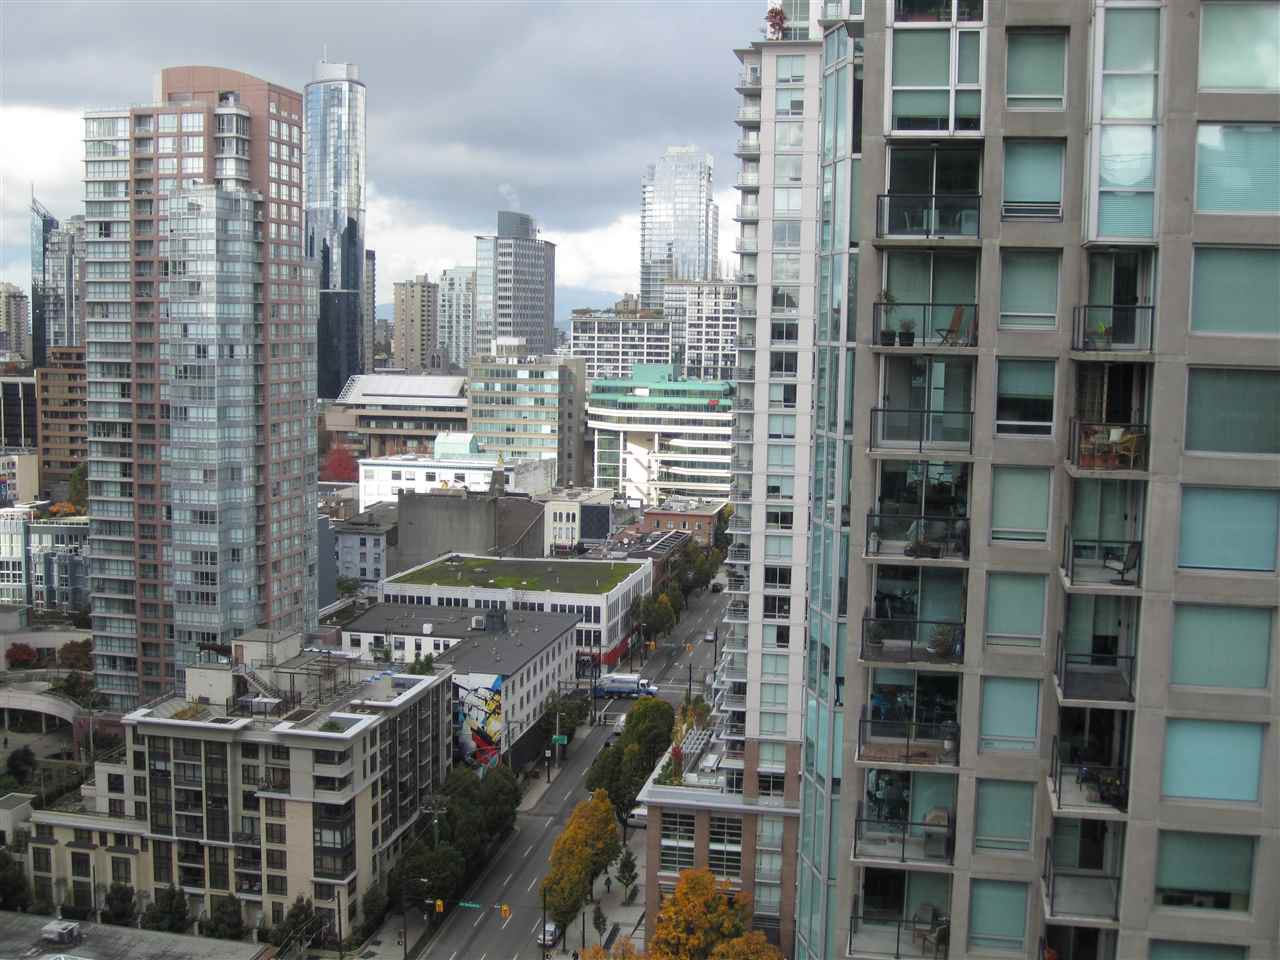 Main Photo: 2502 888 HOMER Street in Vancouver: Downtown VW Condo for sale (Vancouver West)  : MLS®# R2478921